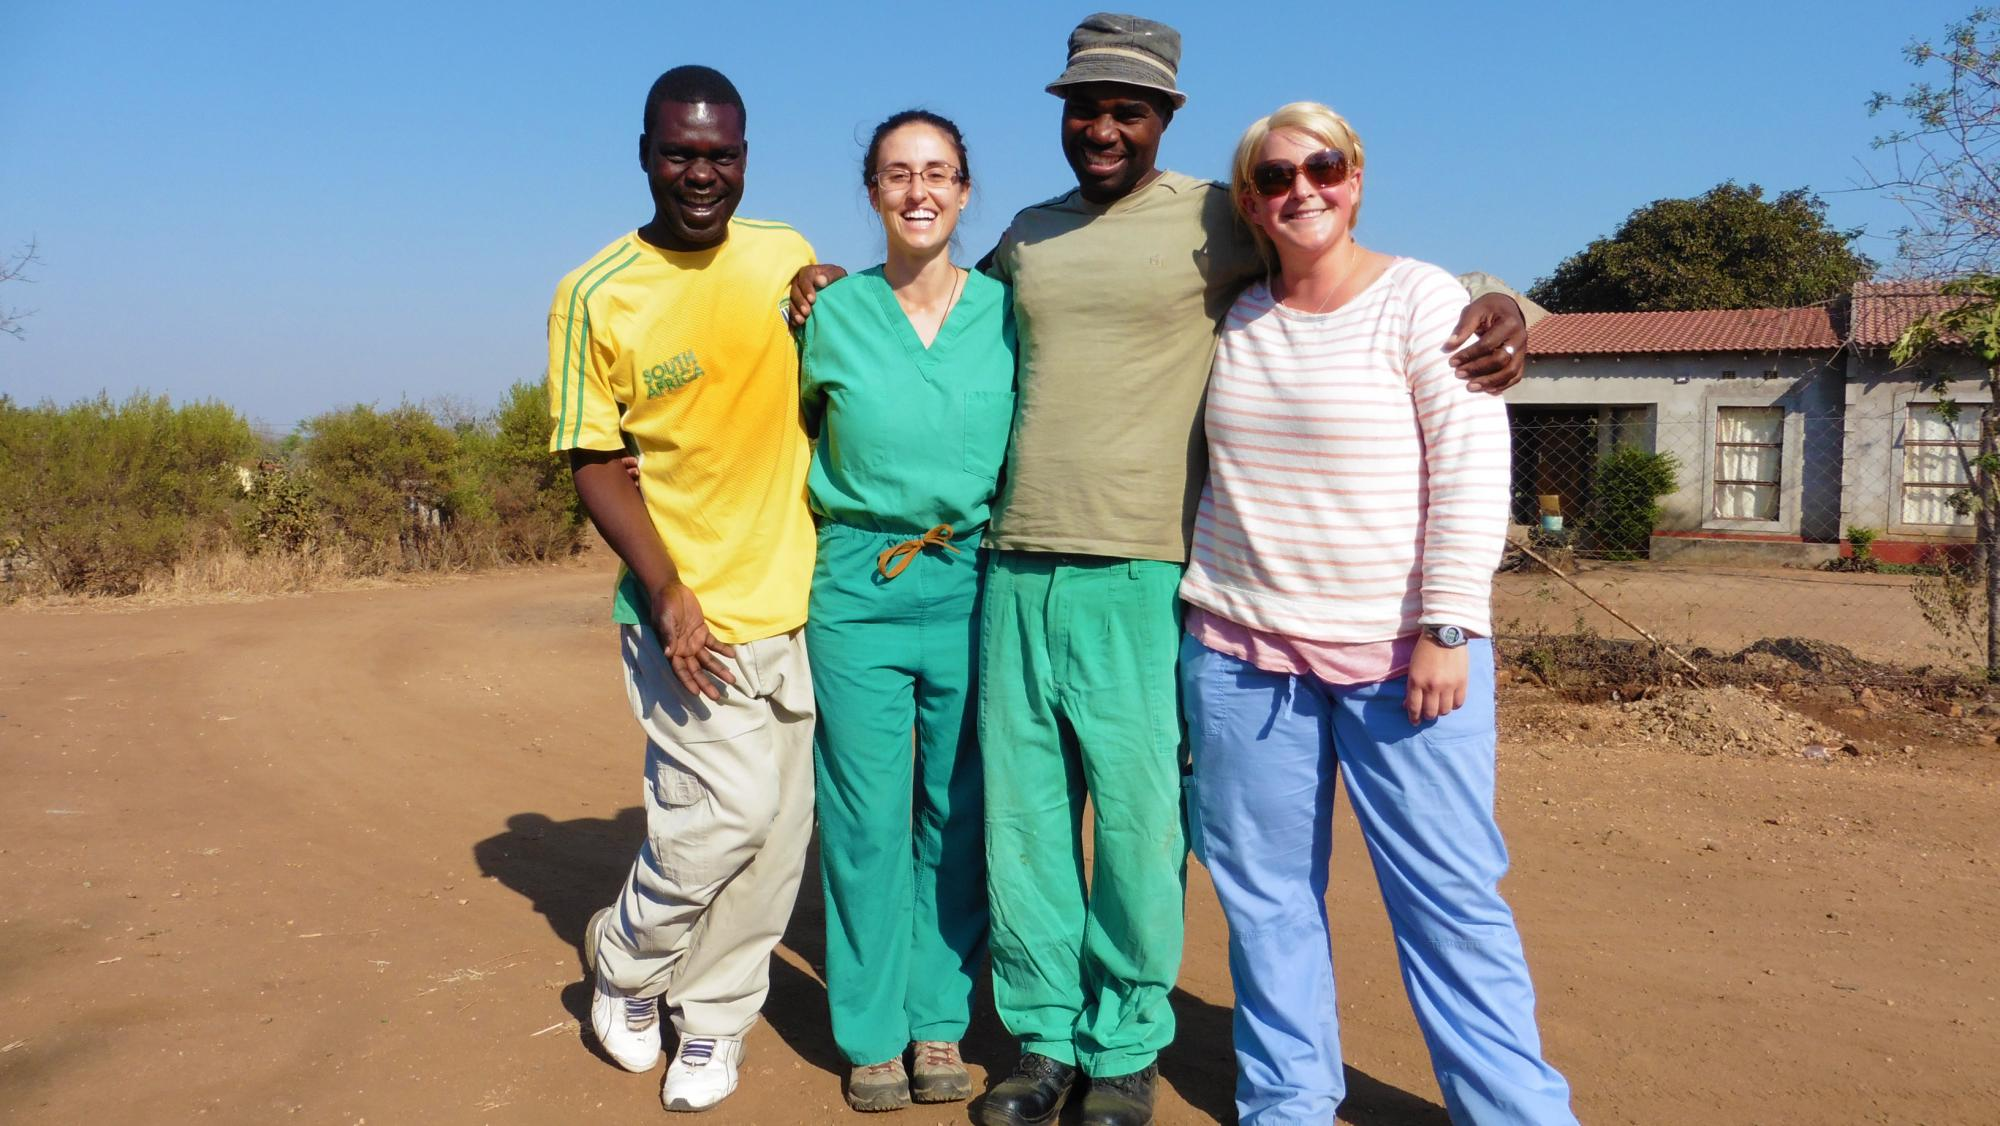 Two veterinary students with two local guides in South Africa.